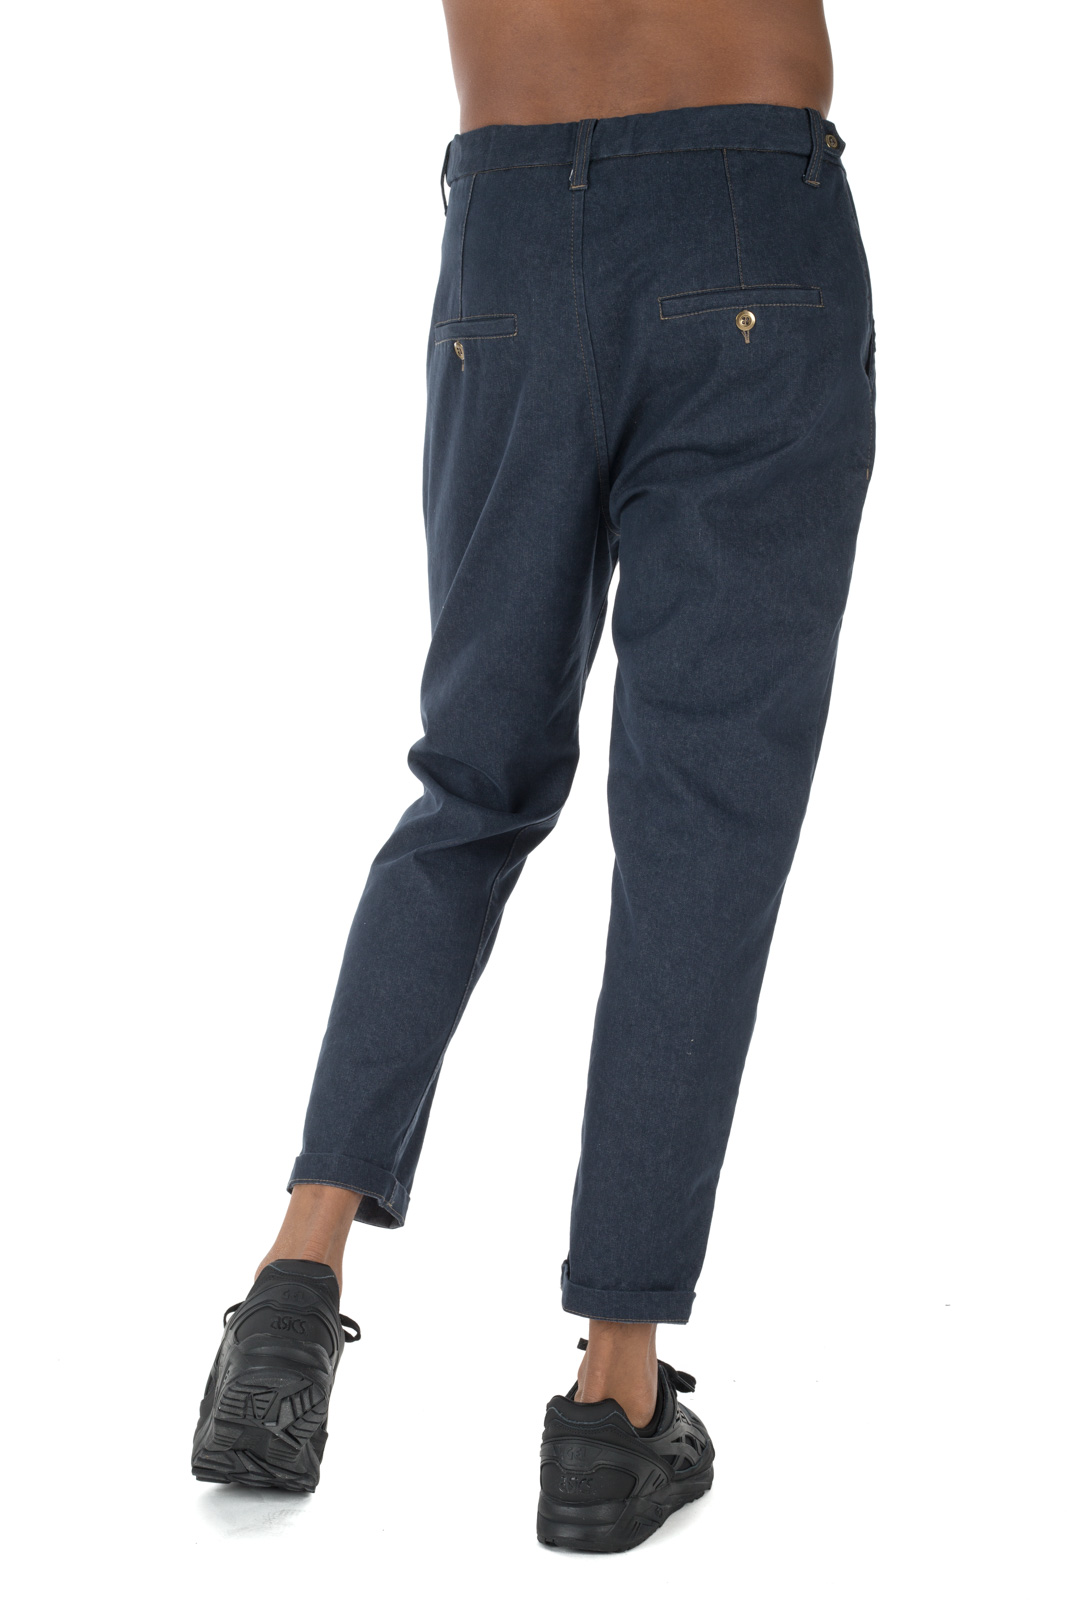 Berna - Jeans with contrasting laces